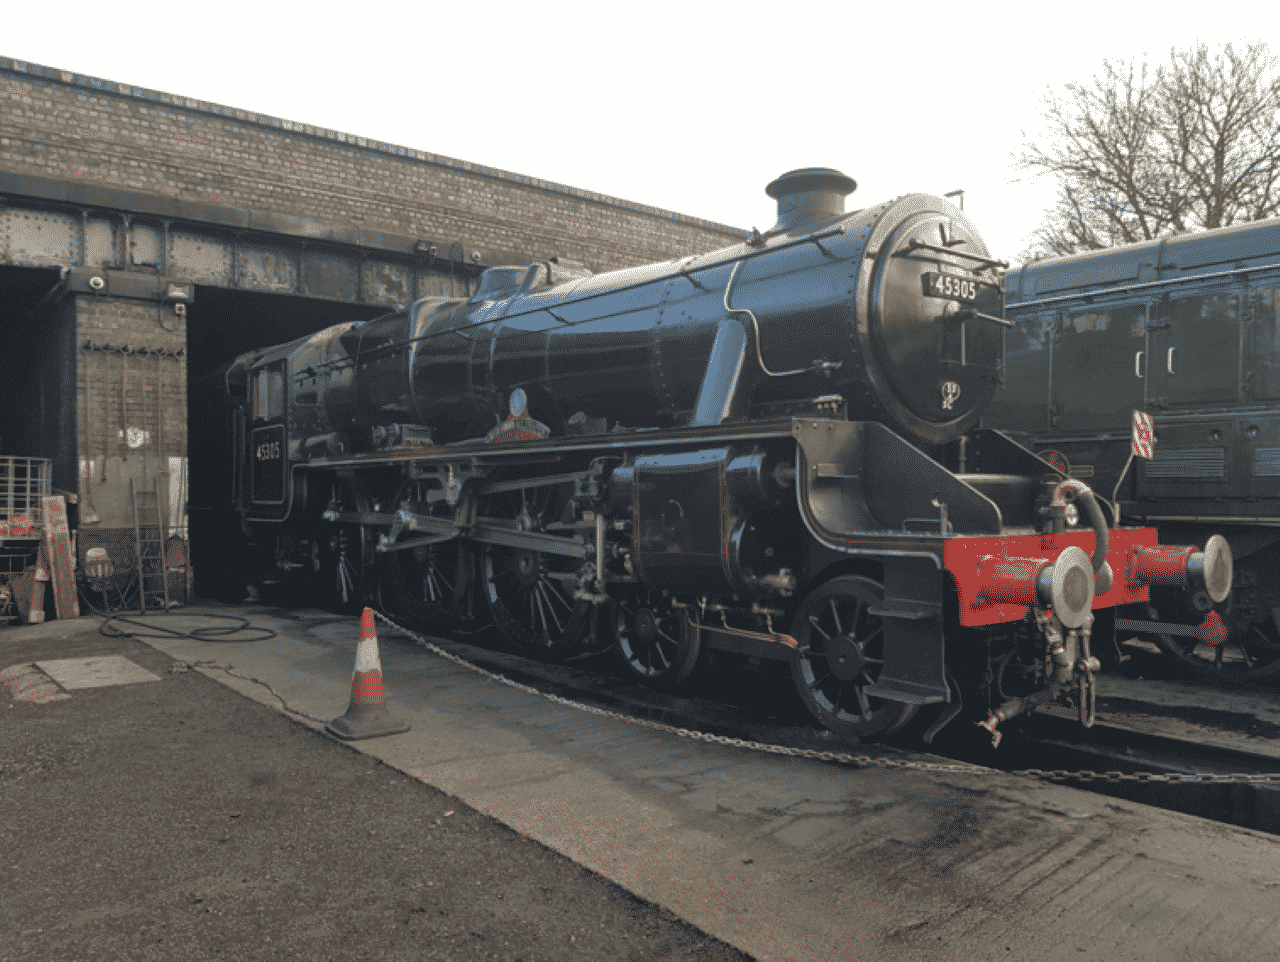 45305 Alderman E Draper at Loughborough sheds on the Great Central Railway